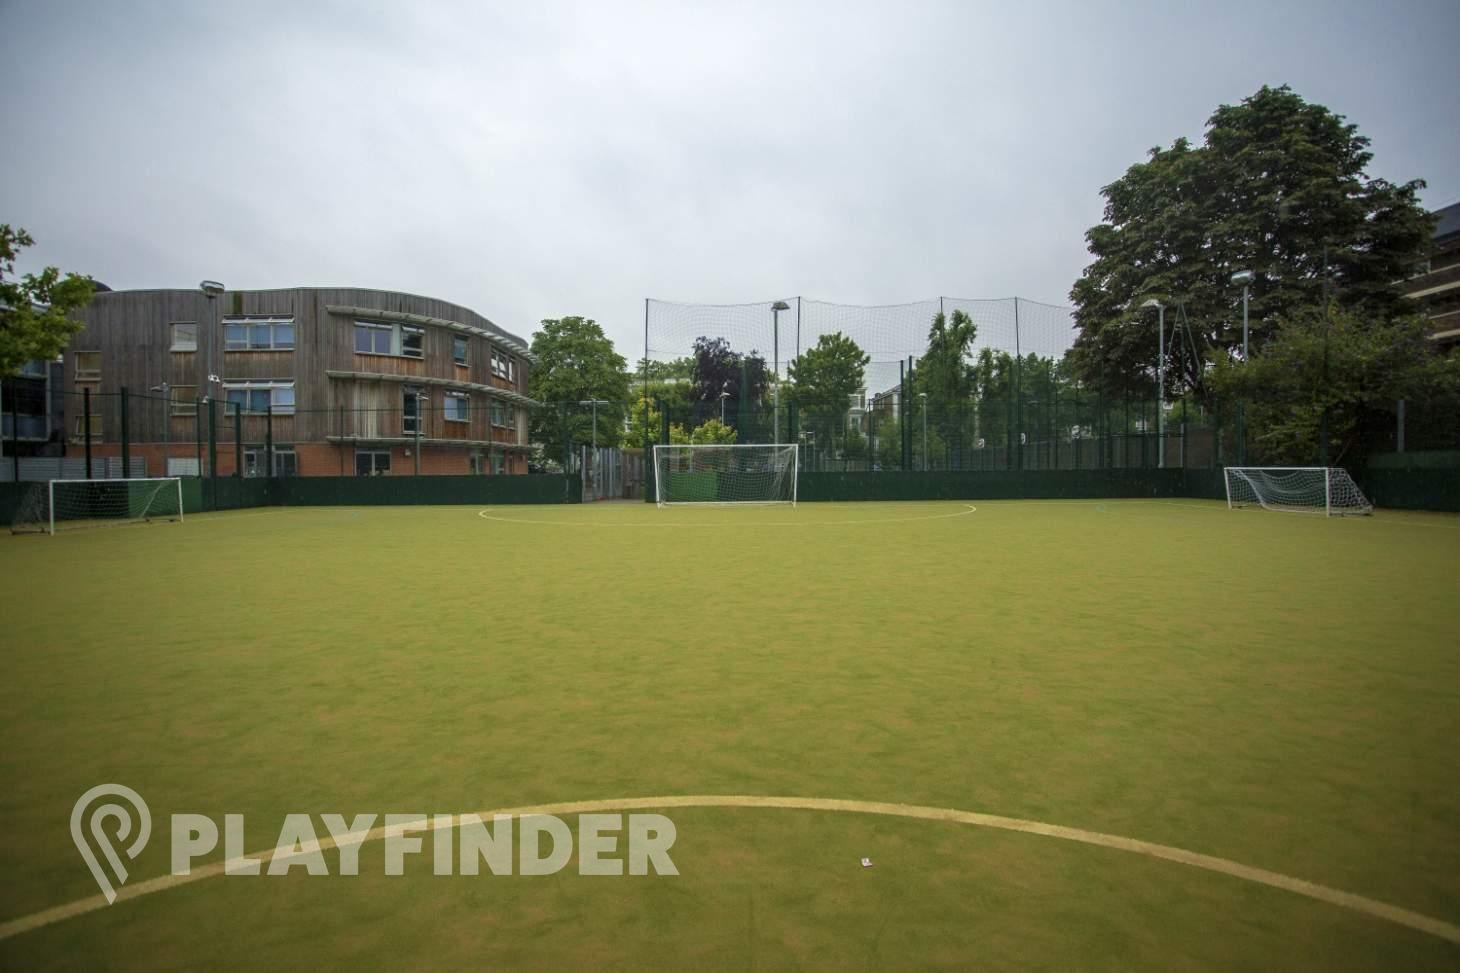 Holloway School Sports Facilities 6 a side | Astroturf football pitch